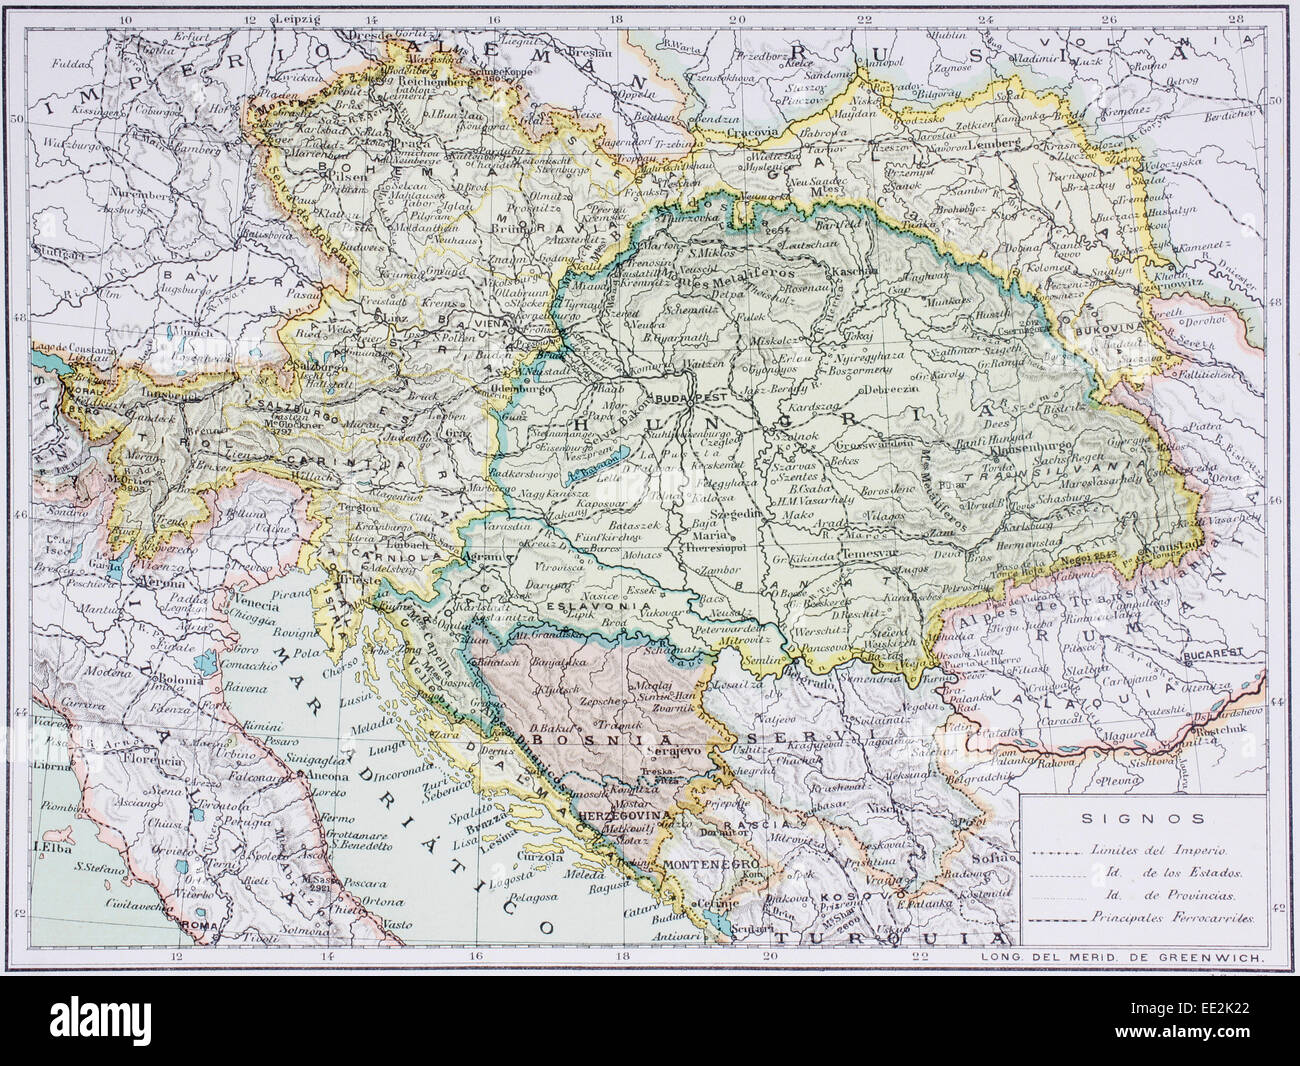 Map of the Austro-Hungarian empire at the turn of the 20th century.  Map is in Spanish language. - Stock Image